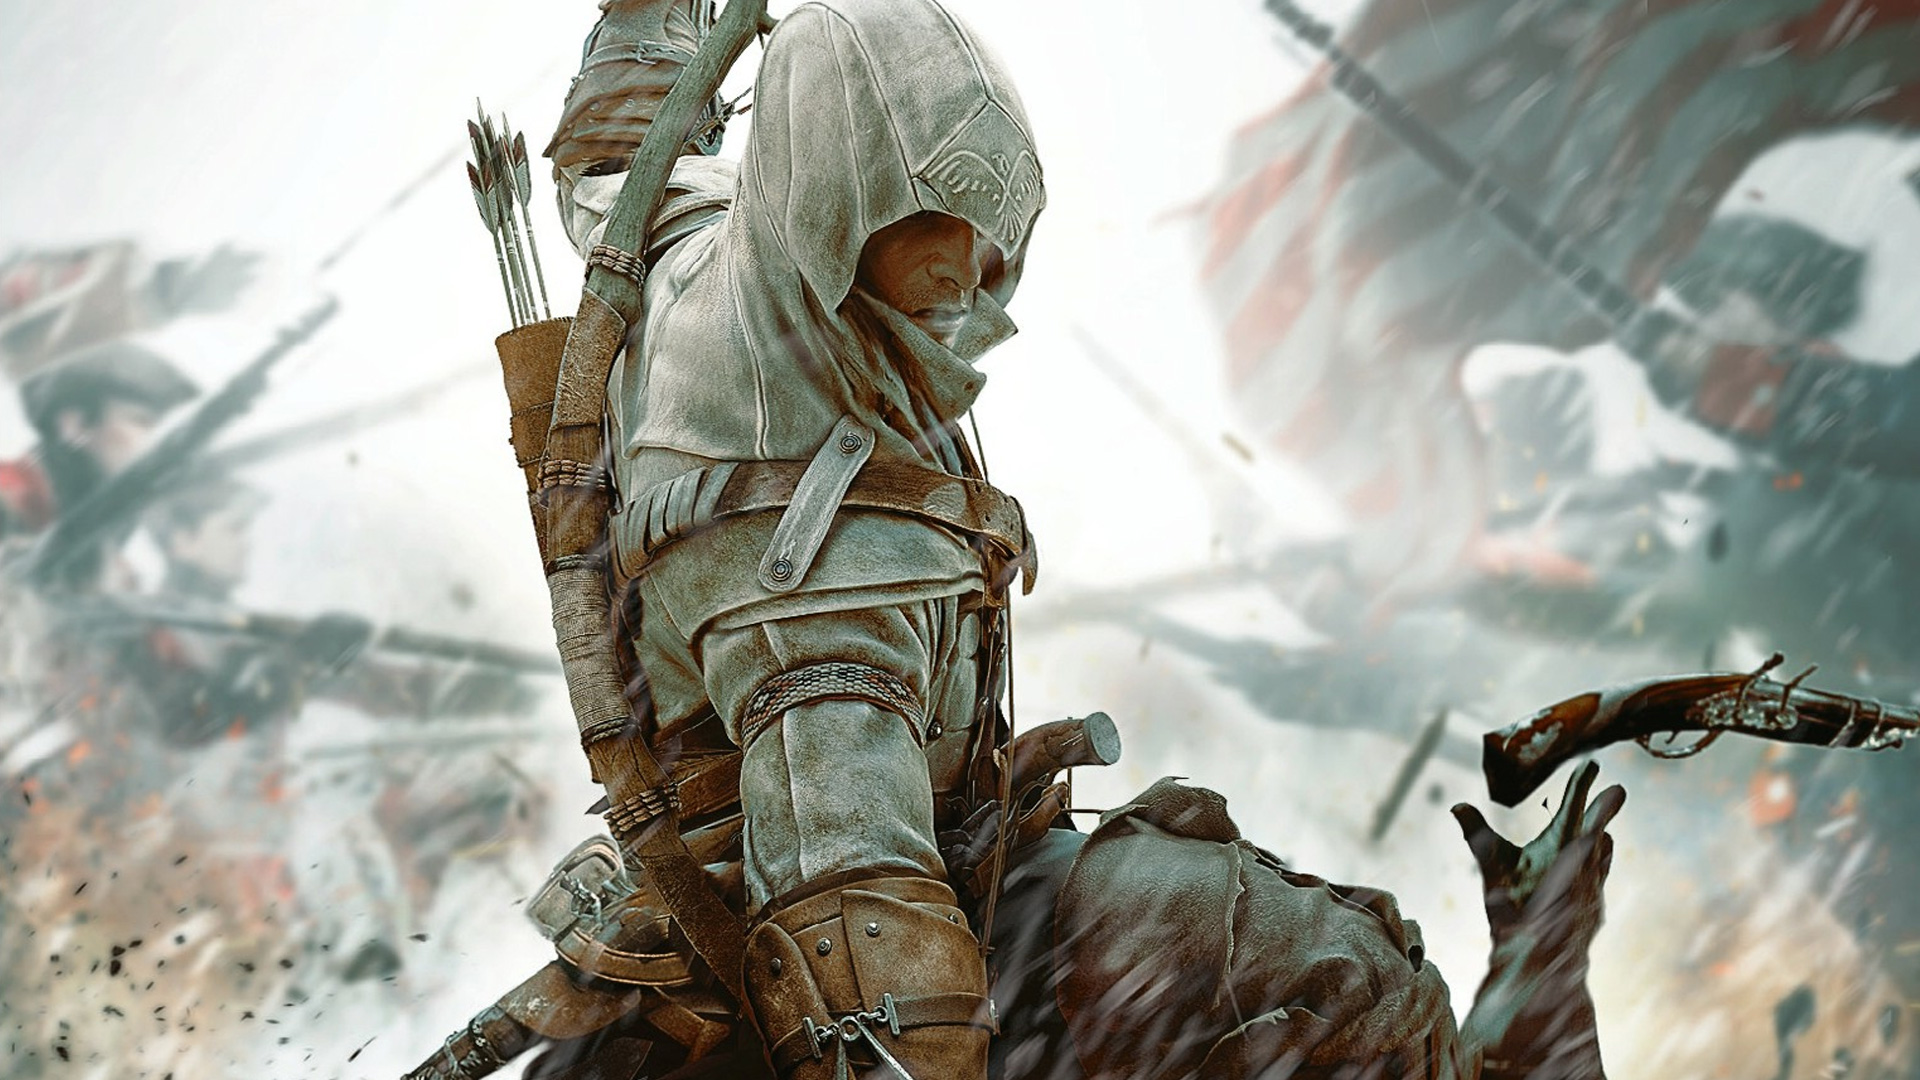 the Collection Assassins Creed Video Game Assassins Creed III 223184 1920x1080